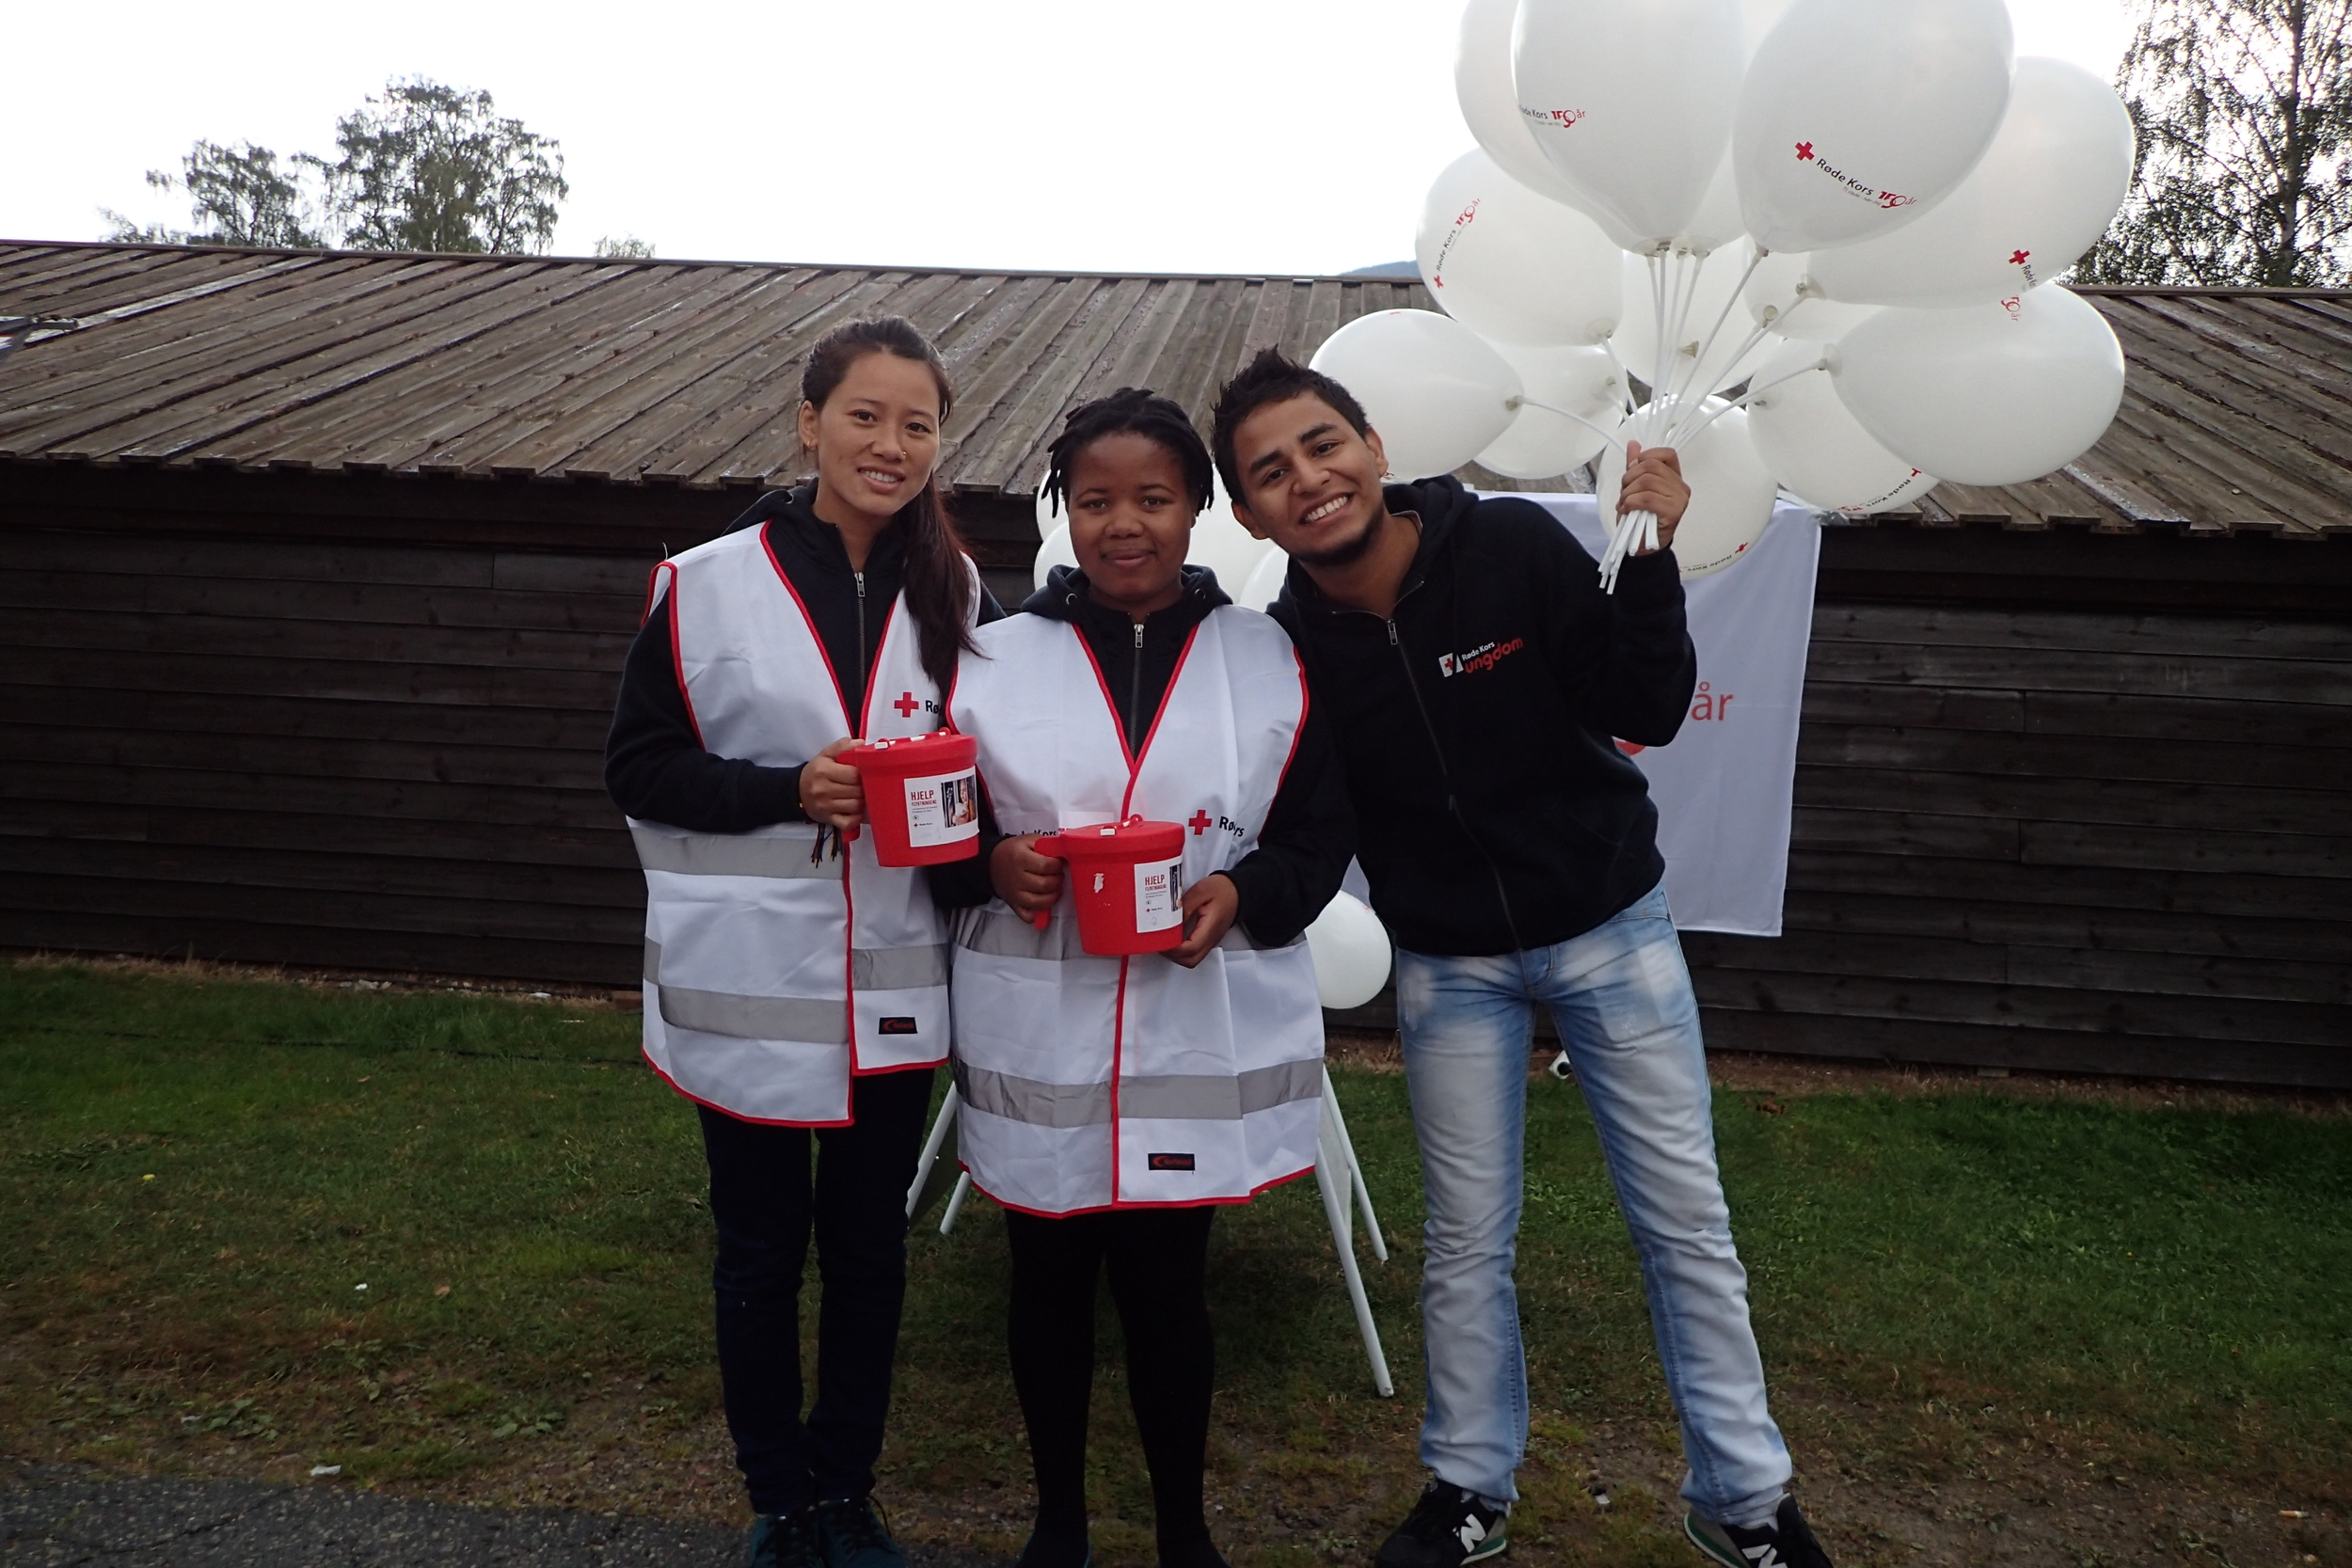 Youth delegates from Nepal, Lesotho and Colombia.